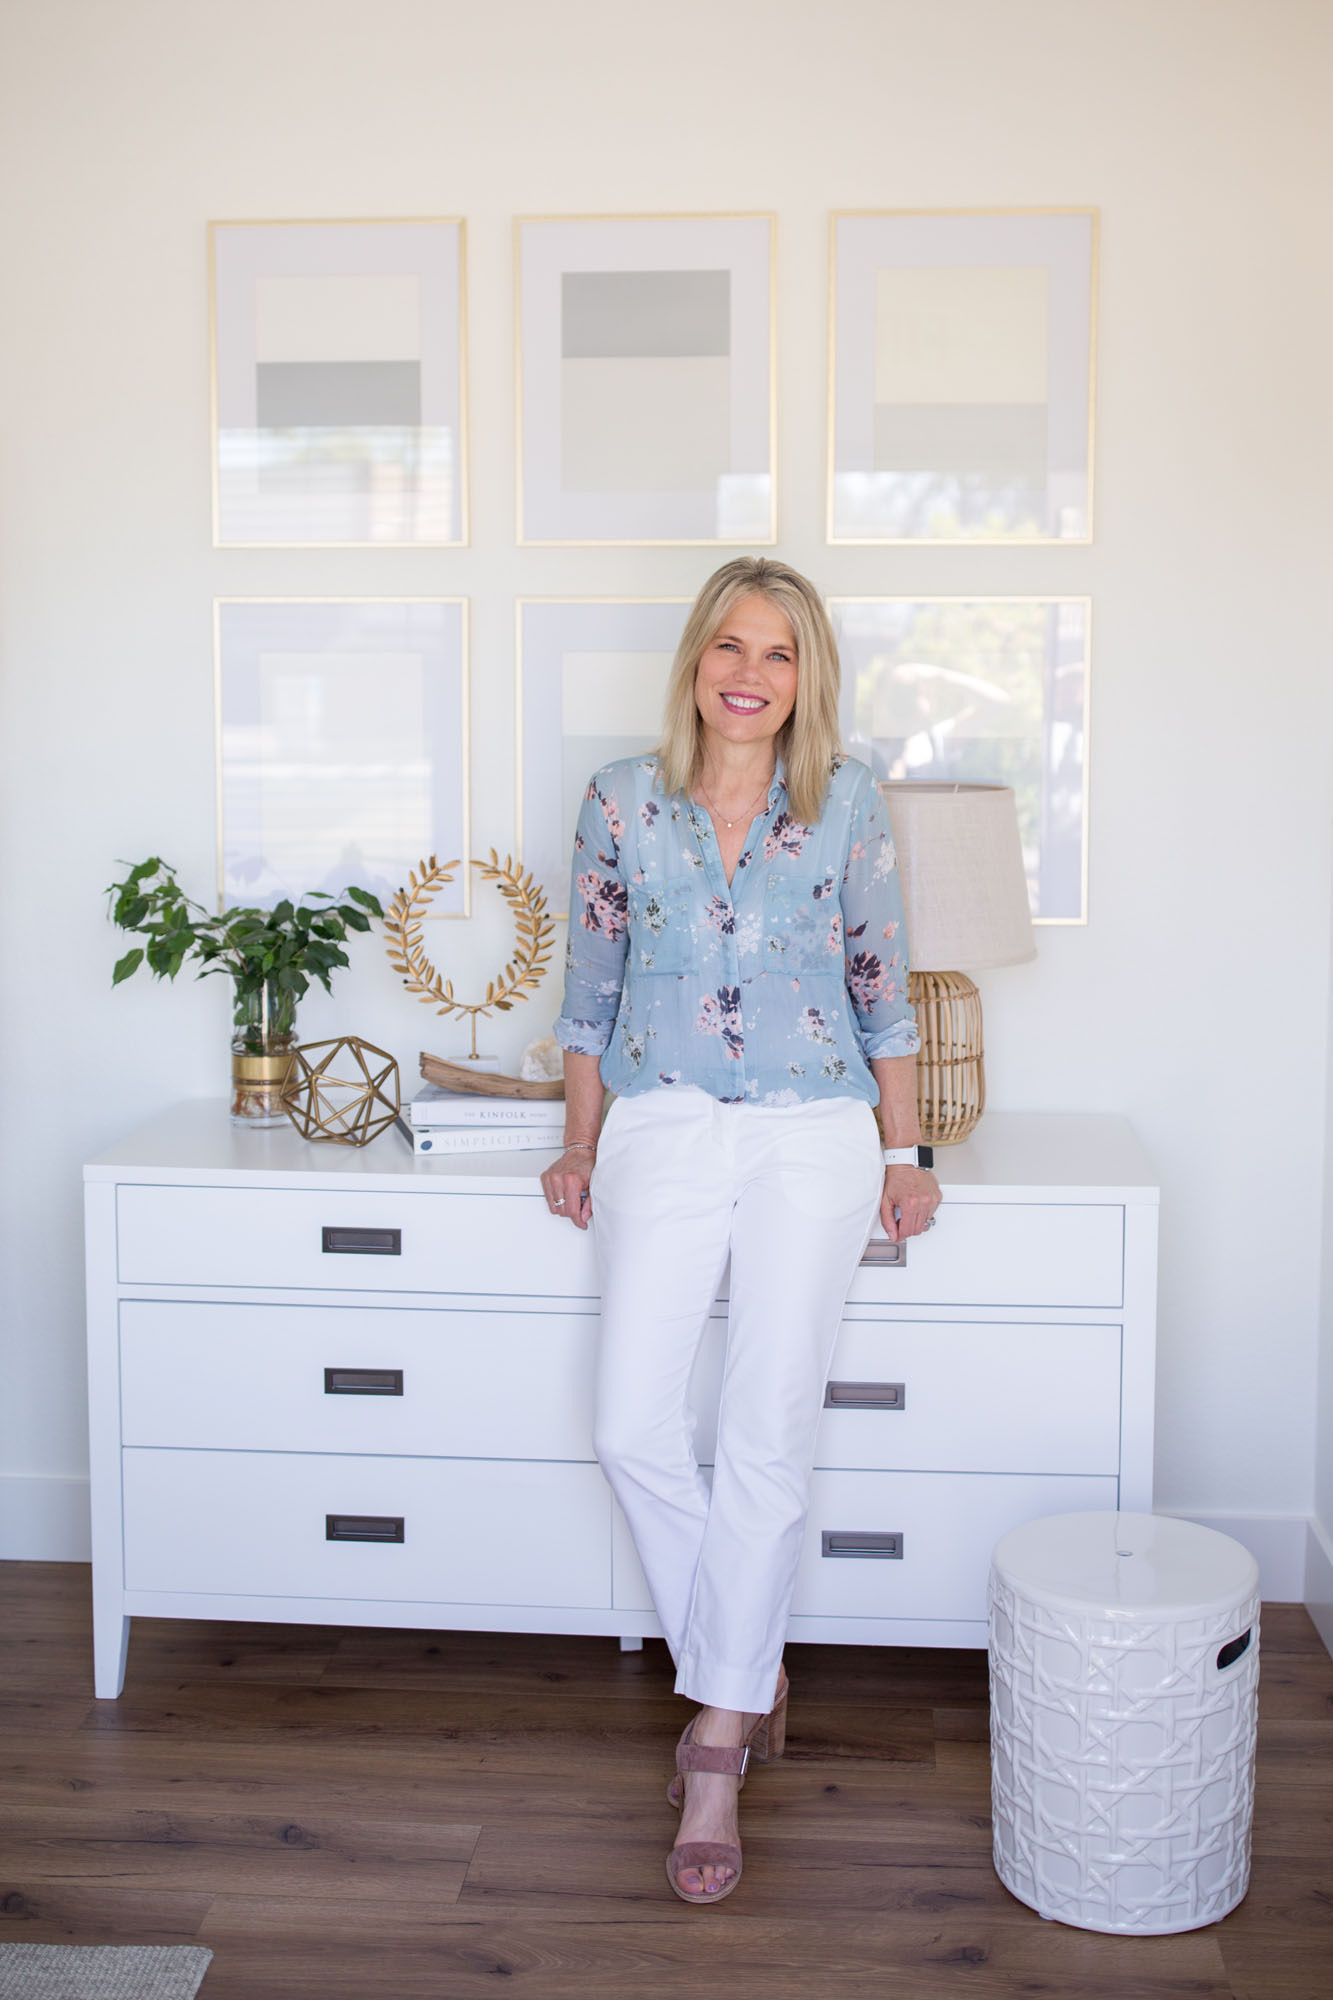 Hi, I'm Tami - Interior Designer, Sacramento, CaliforniaAs a spatial designer, I work at the intersection of architecture and design to help discerning clients get the best possible version of their homes, as well as the maximum use out of their spaces. I'm an interior designer, but more than that, I'm here to help you get the most from the walls of your home.